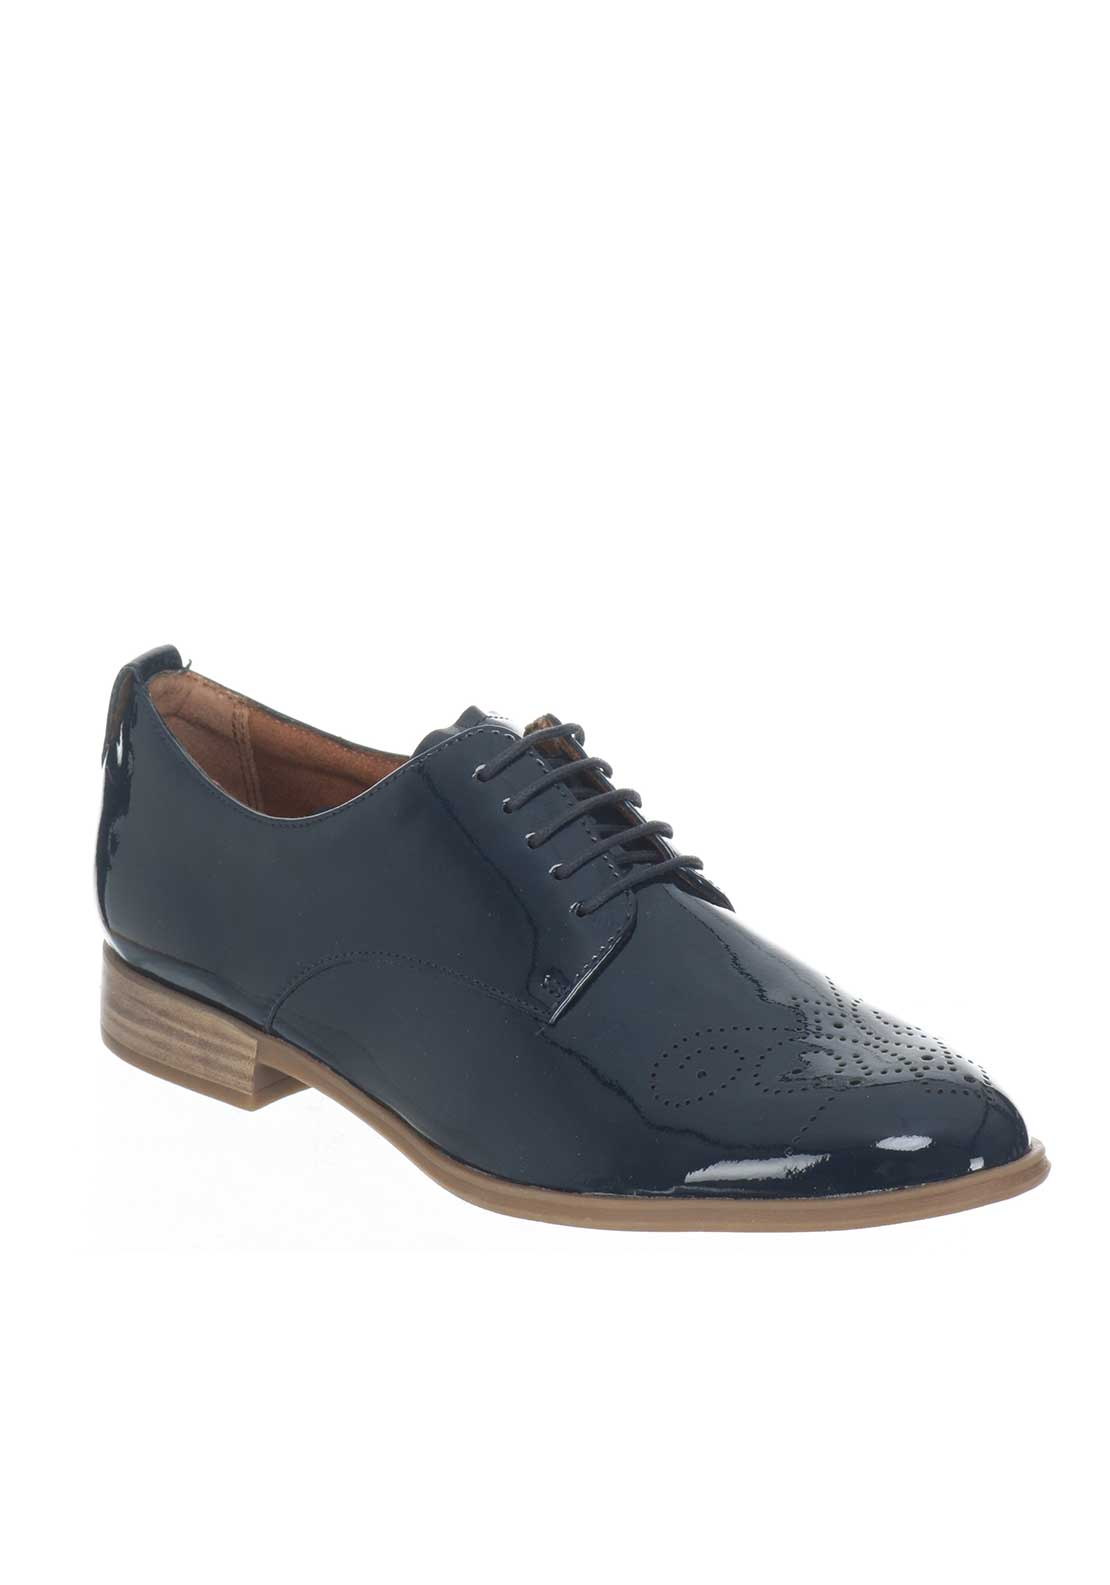 Tamaris Patent Laser Cut Laced Brogues, Navy